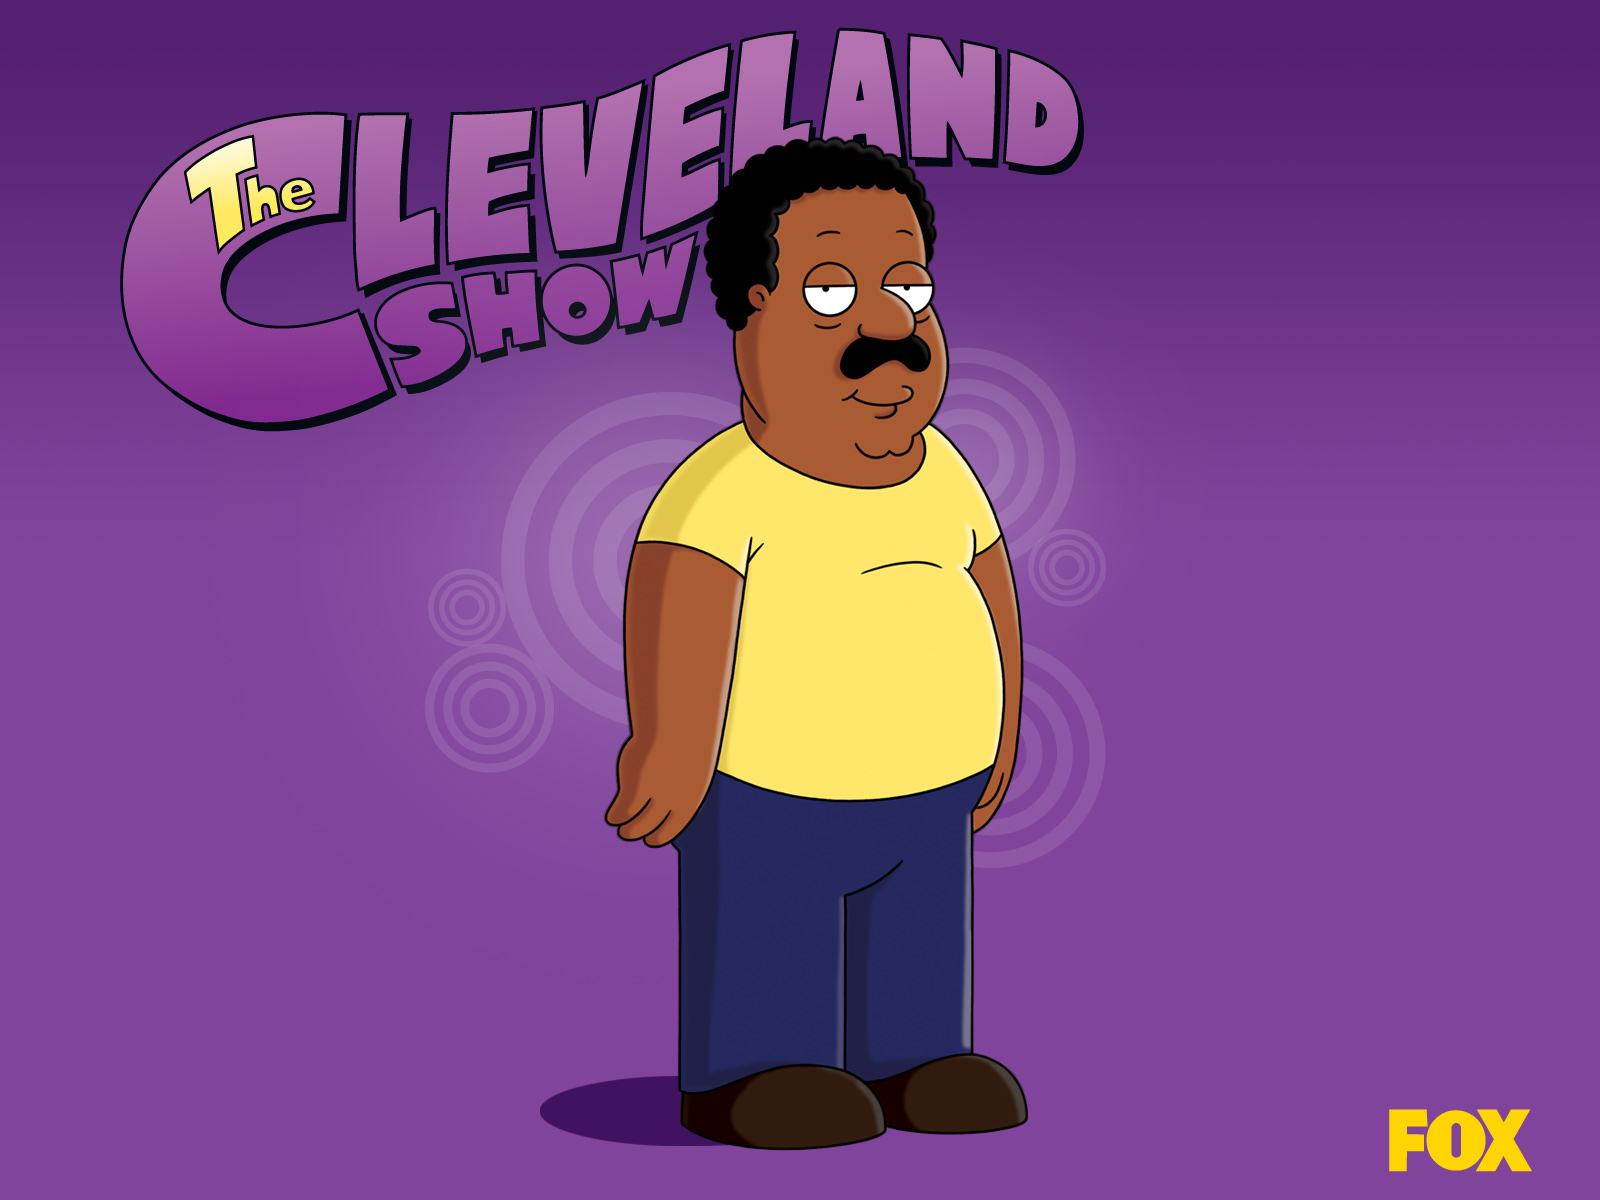 I can't believe it was Cleveland from Family Guy that got his own spin-off. I thought if anyone, it should have been Quagmire.